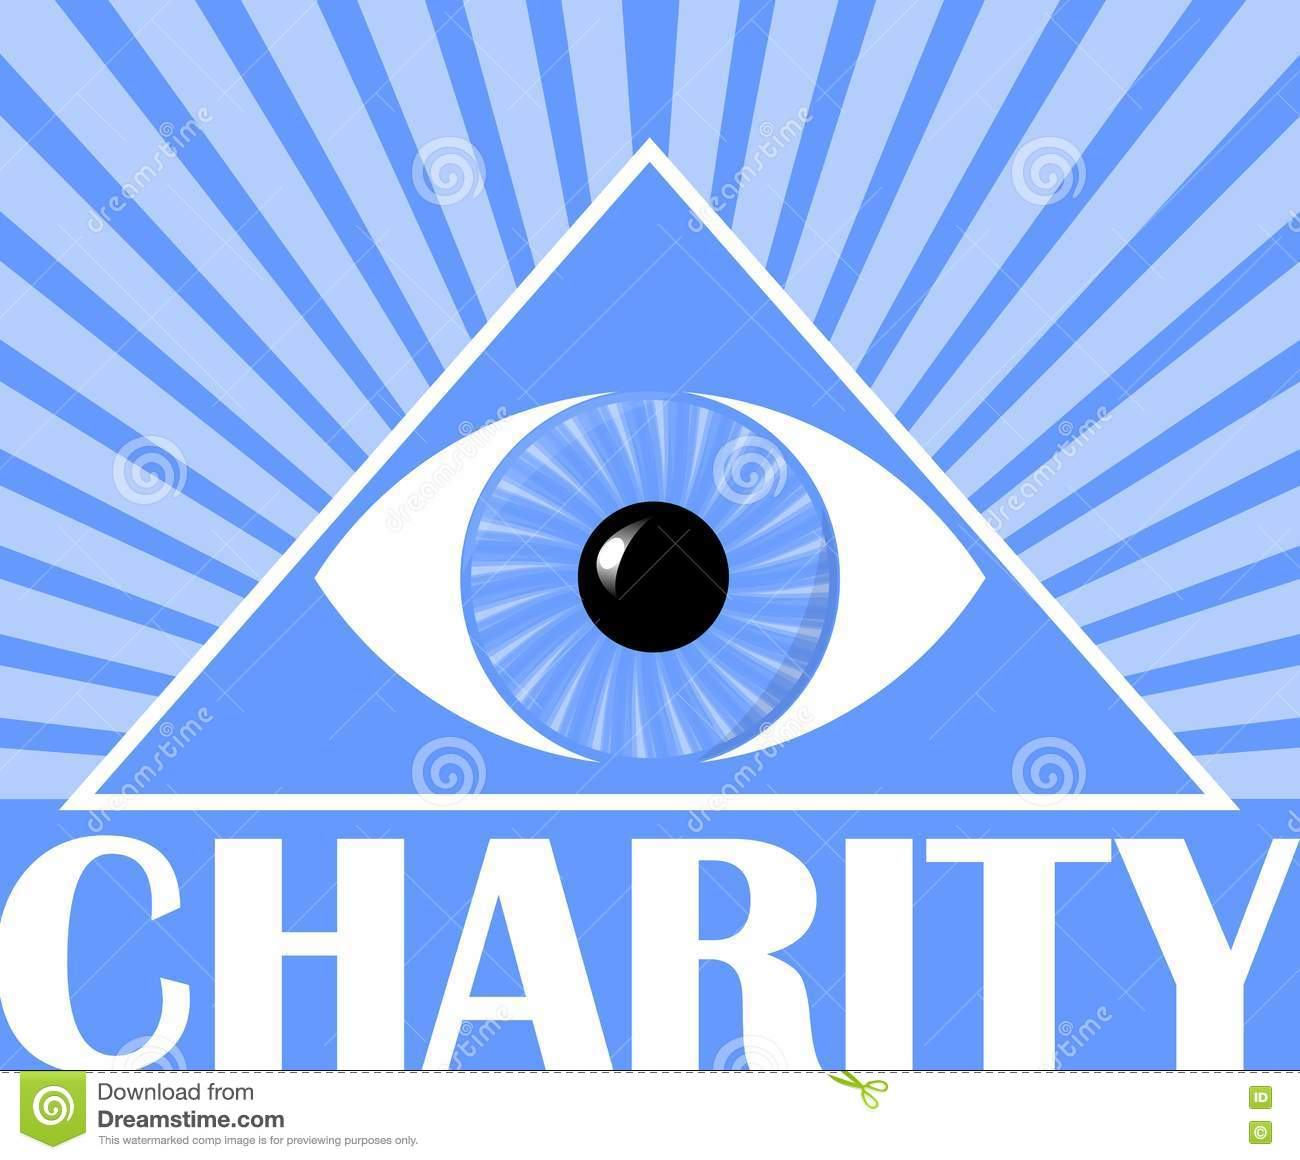 Charity flyer with a symbol of gods eye in triangle blue charity flyer with a symbol of god s eye in triangle blue background with white rays poster for christian charity events buycottarizona